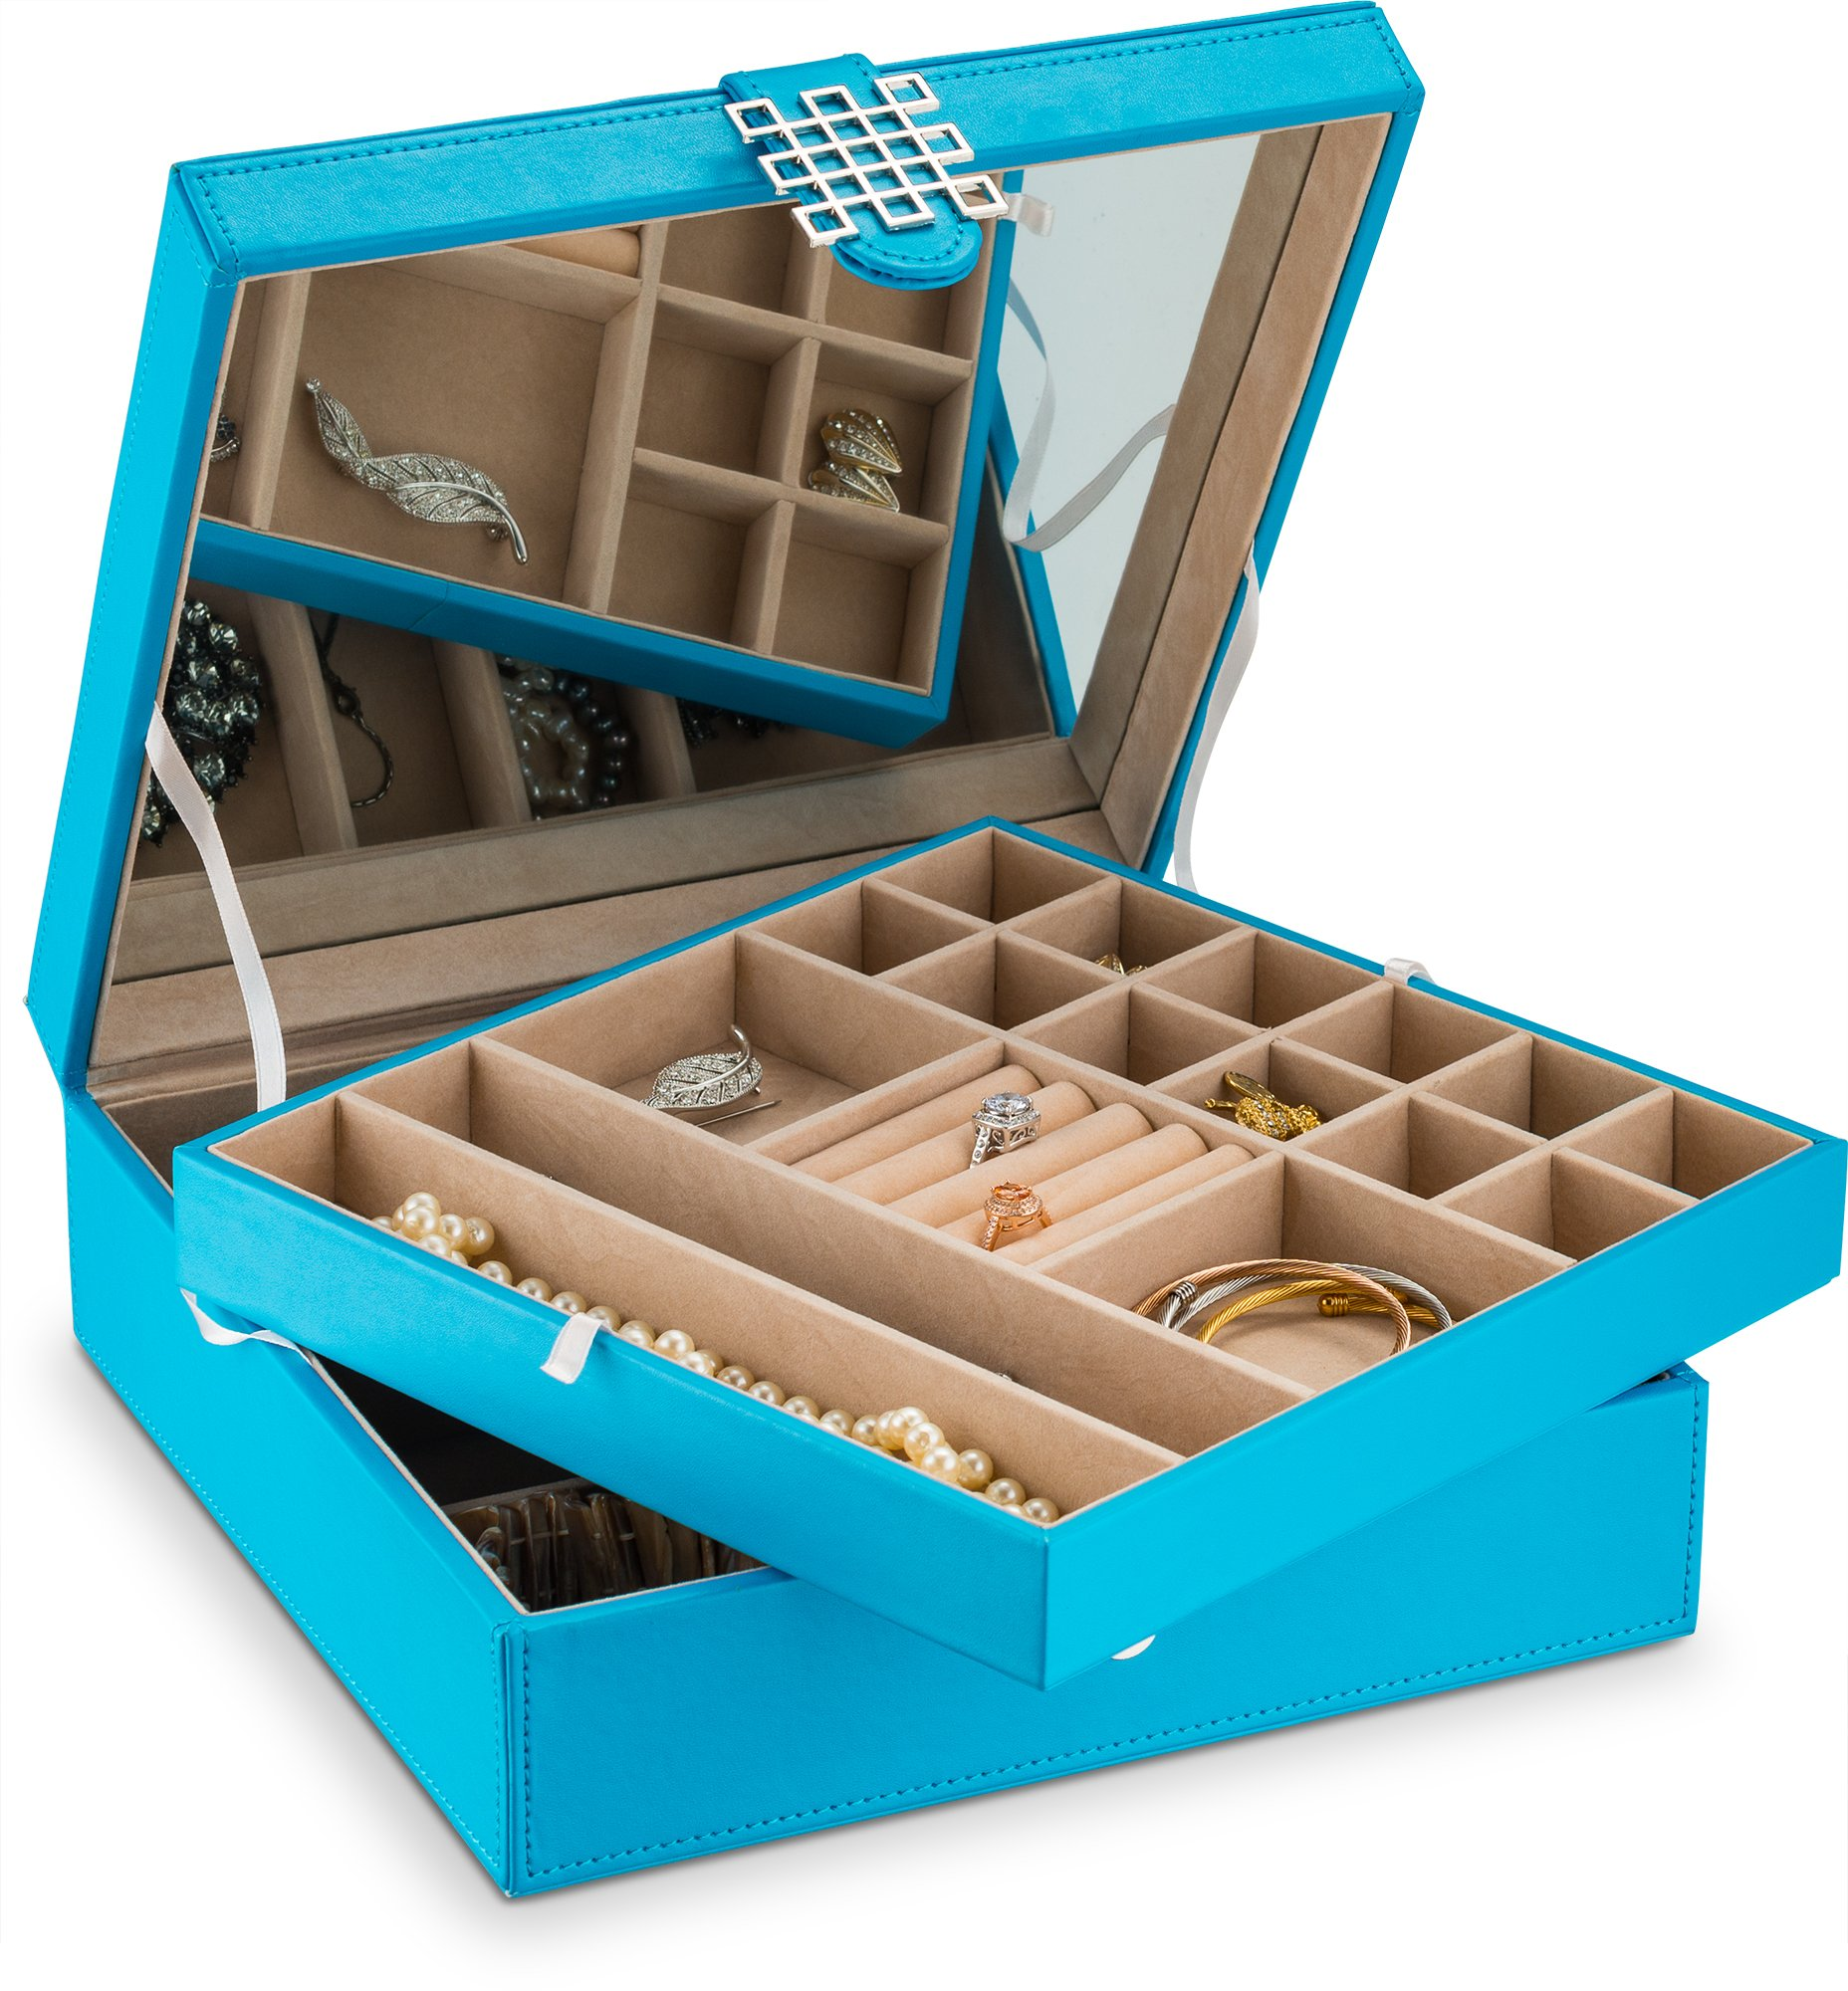 Glenor Co Jewelry Box - 28 Section Classic Organizer with Modern Buckle Closure, Large Mirror & 2 Trays for Women Teens and Girls - Holder for Earring Ring Necklace Bracelet & Watch -PU Leather - Blue